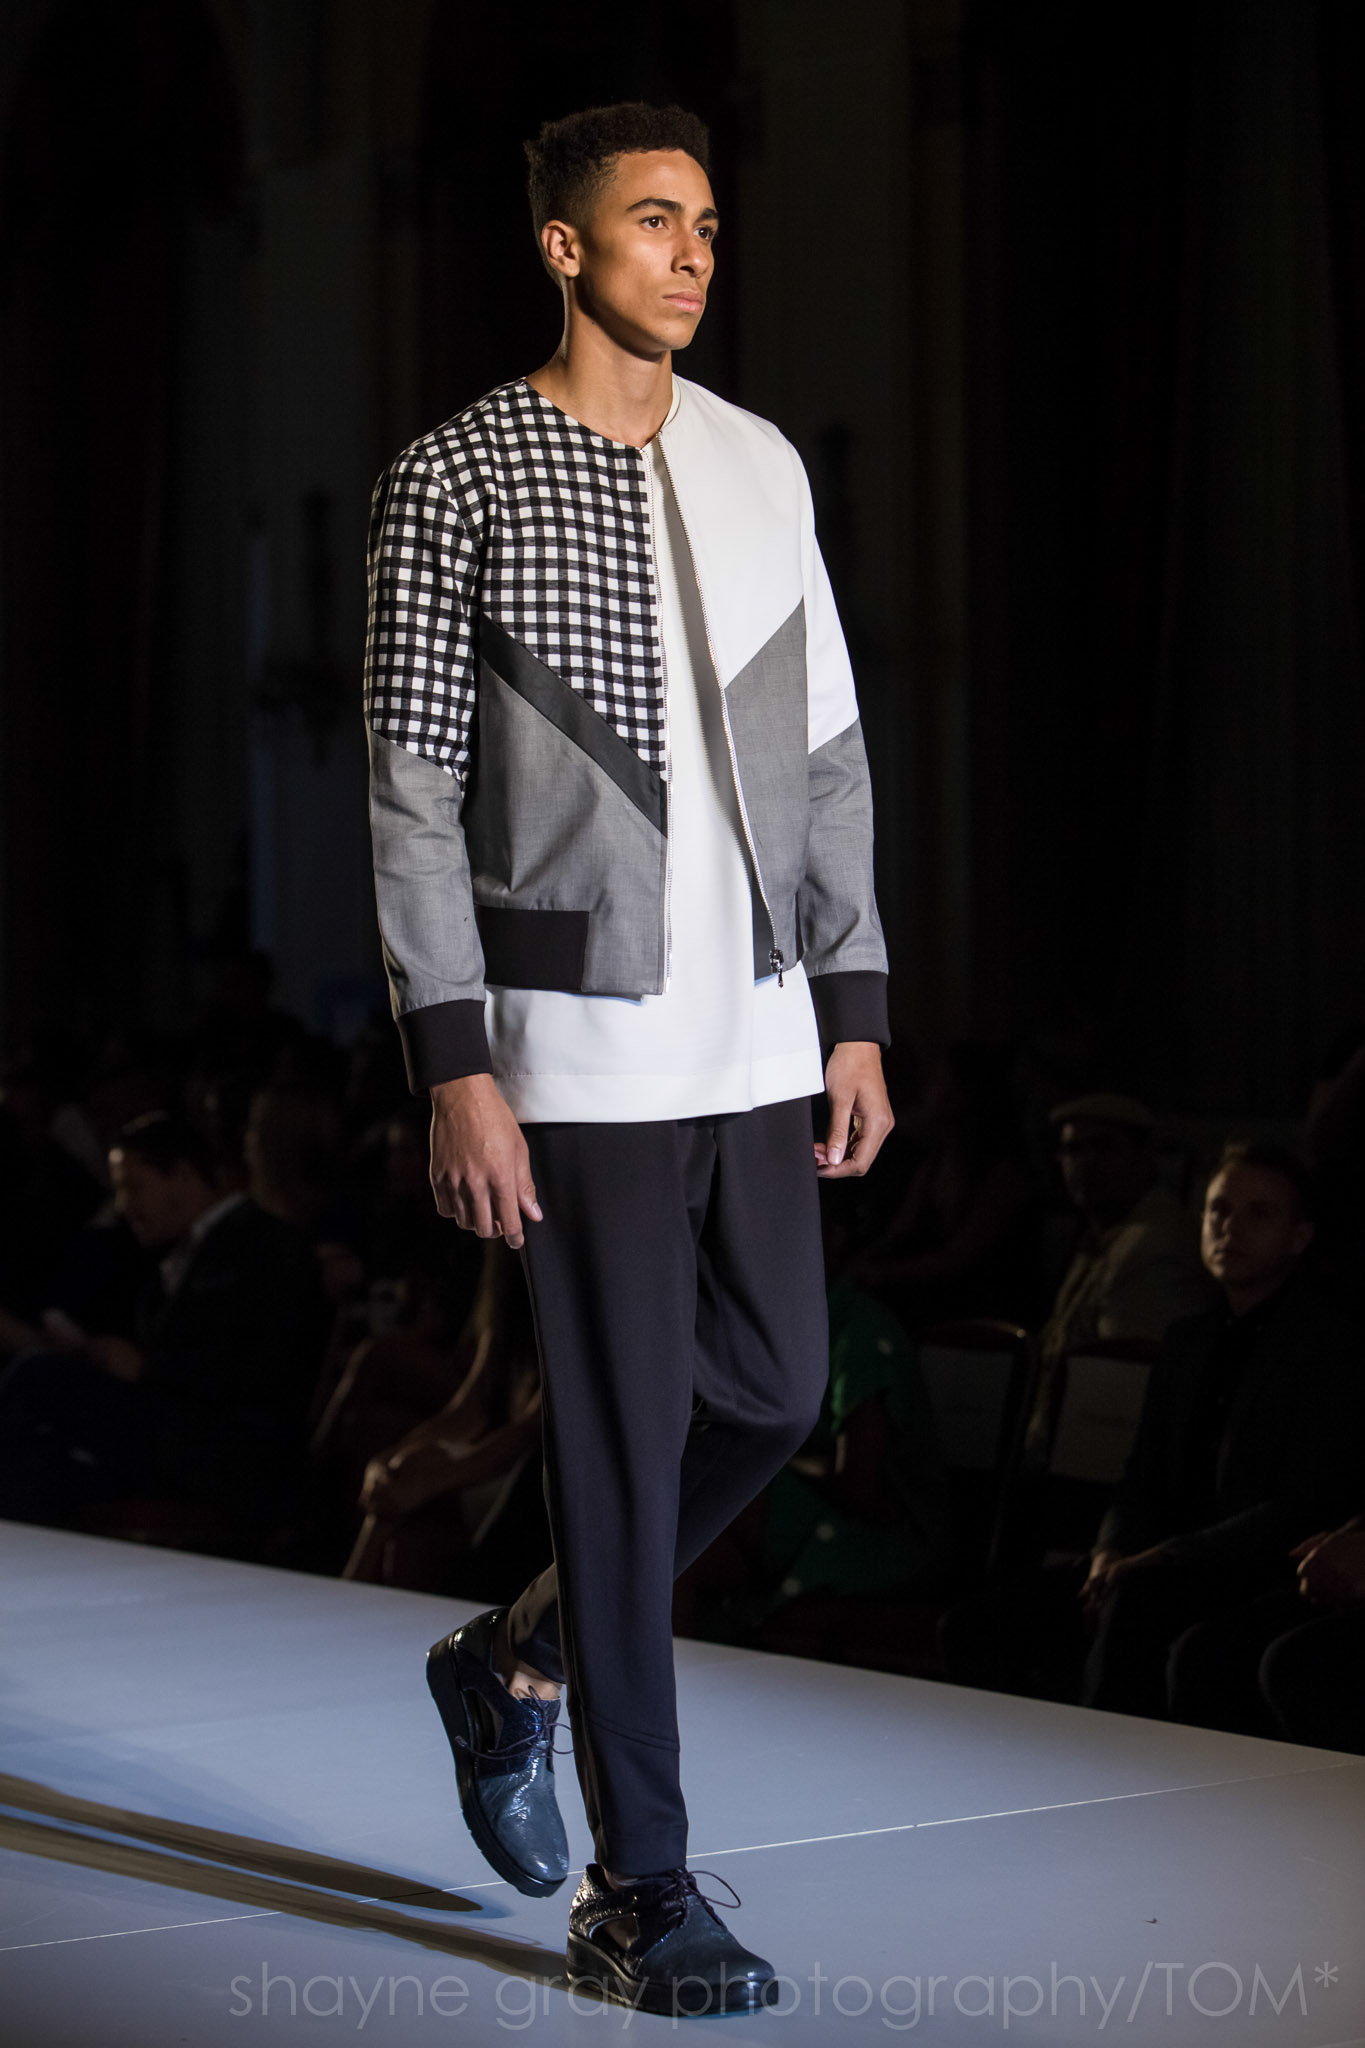 Shayne-Gray-Toronto-men's-fashion_week-TOM-noel-crisostomo-8468.jpg